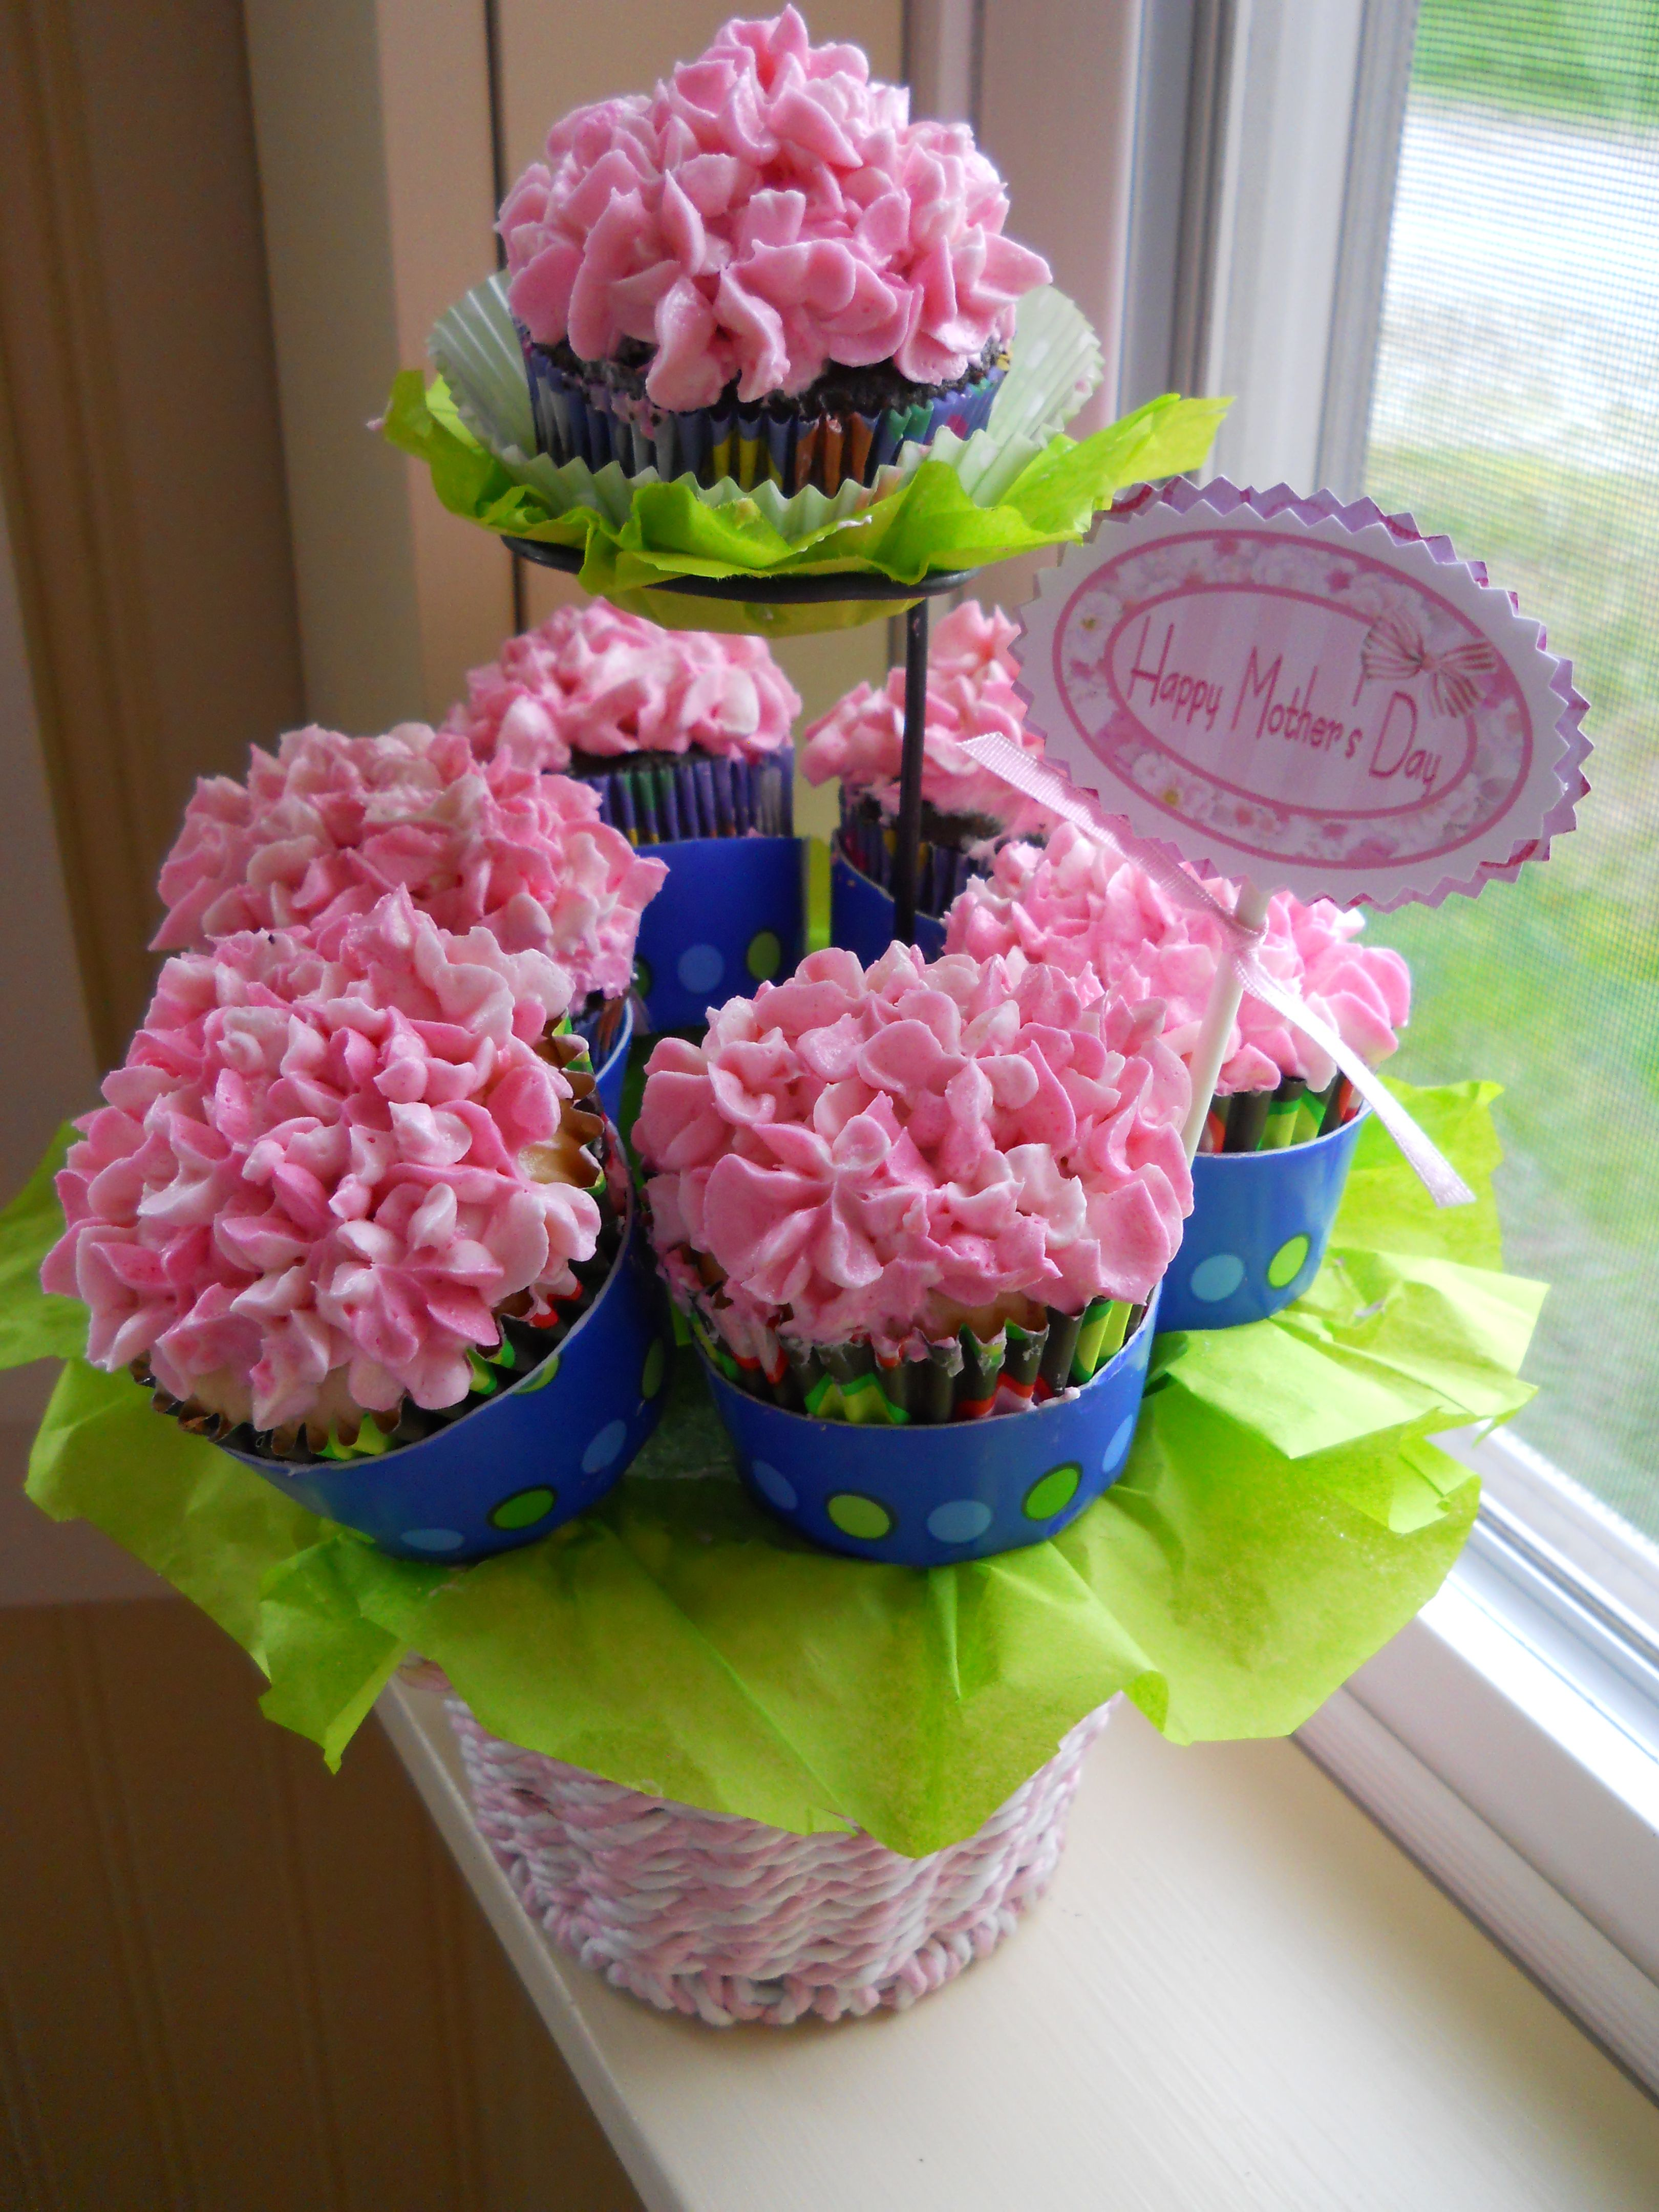 This would be cute for a bridal shower or baby shower centerpiece!! Cupcakes! still working on it!! not quite perfect!